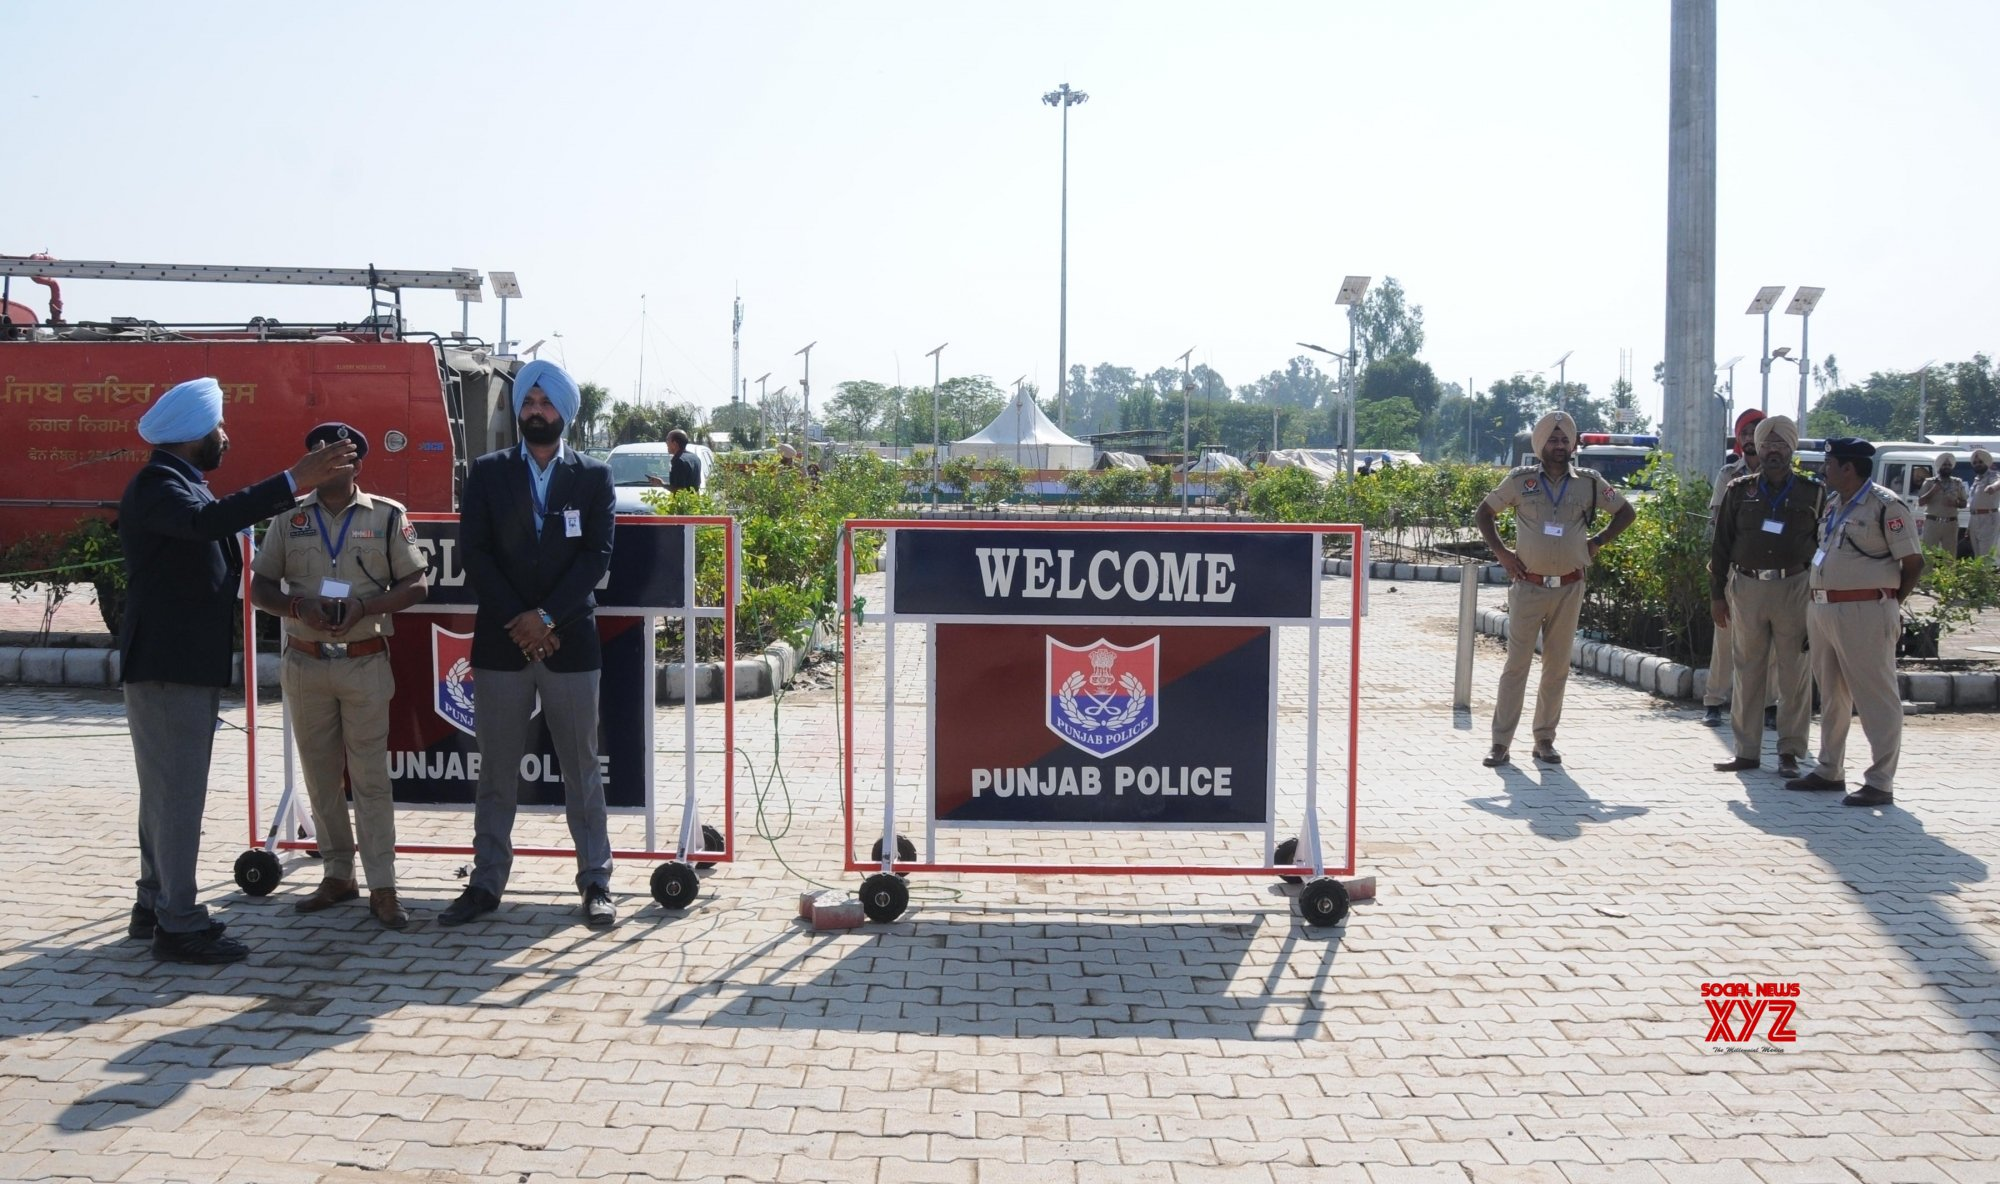 Dera Baba Nanak: Security beefed up at Integrated Check Post of Kartarpur corridor in Punjab #Gallery